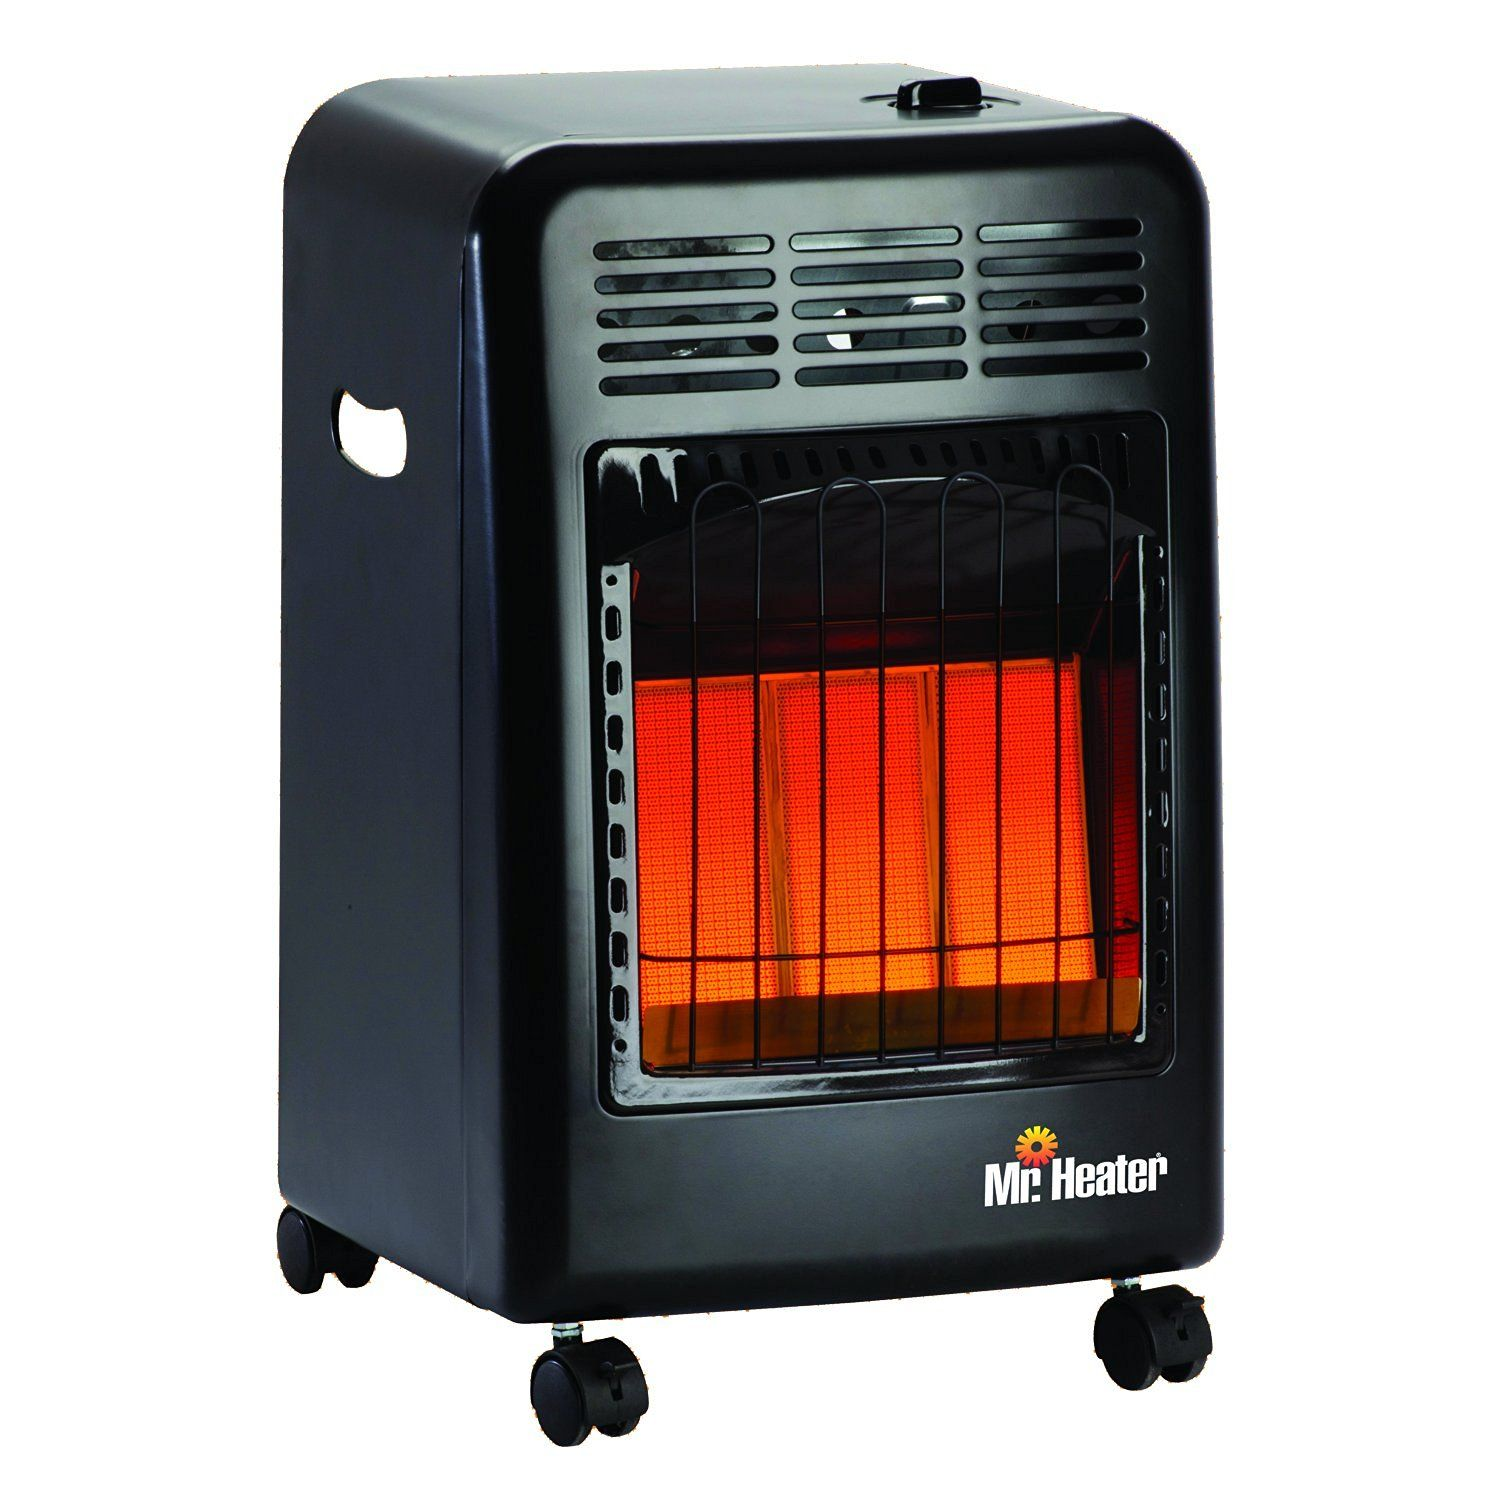 Amazon Com Mr Heater Mh18ch Radiant Cabinet Lp Heater Home Kitchen Propane Heater Space Heater Propane Gas Heaters